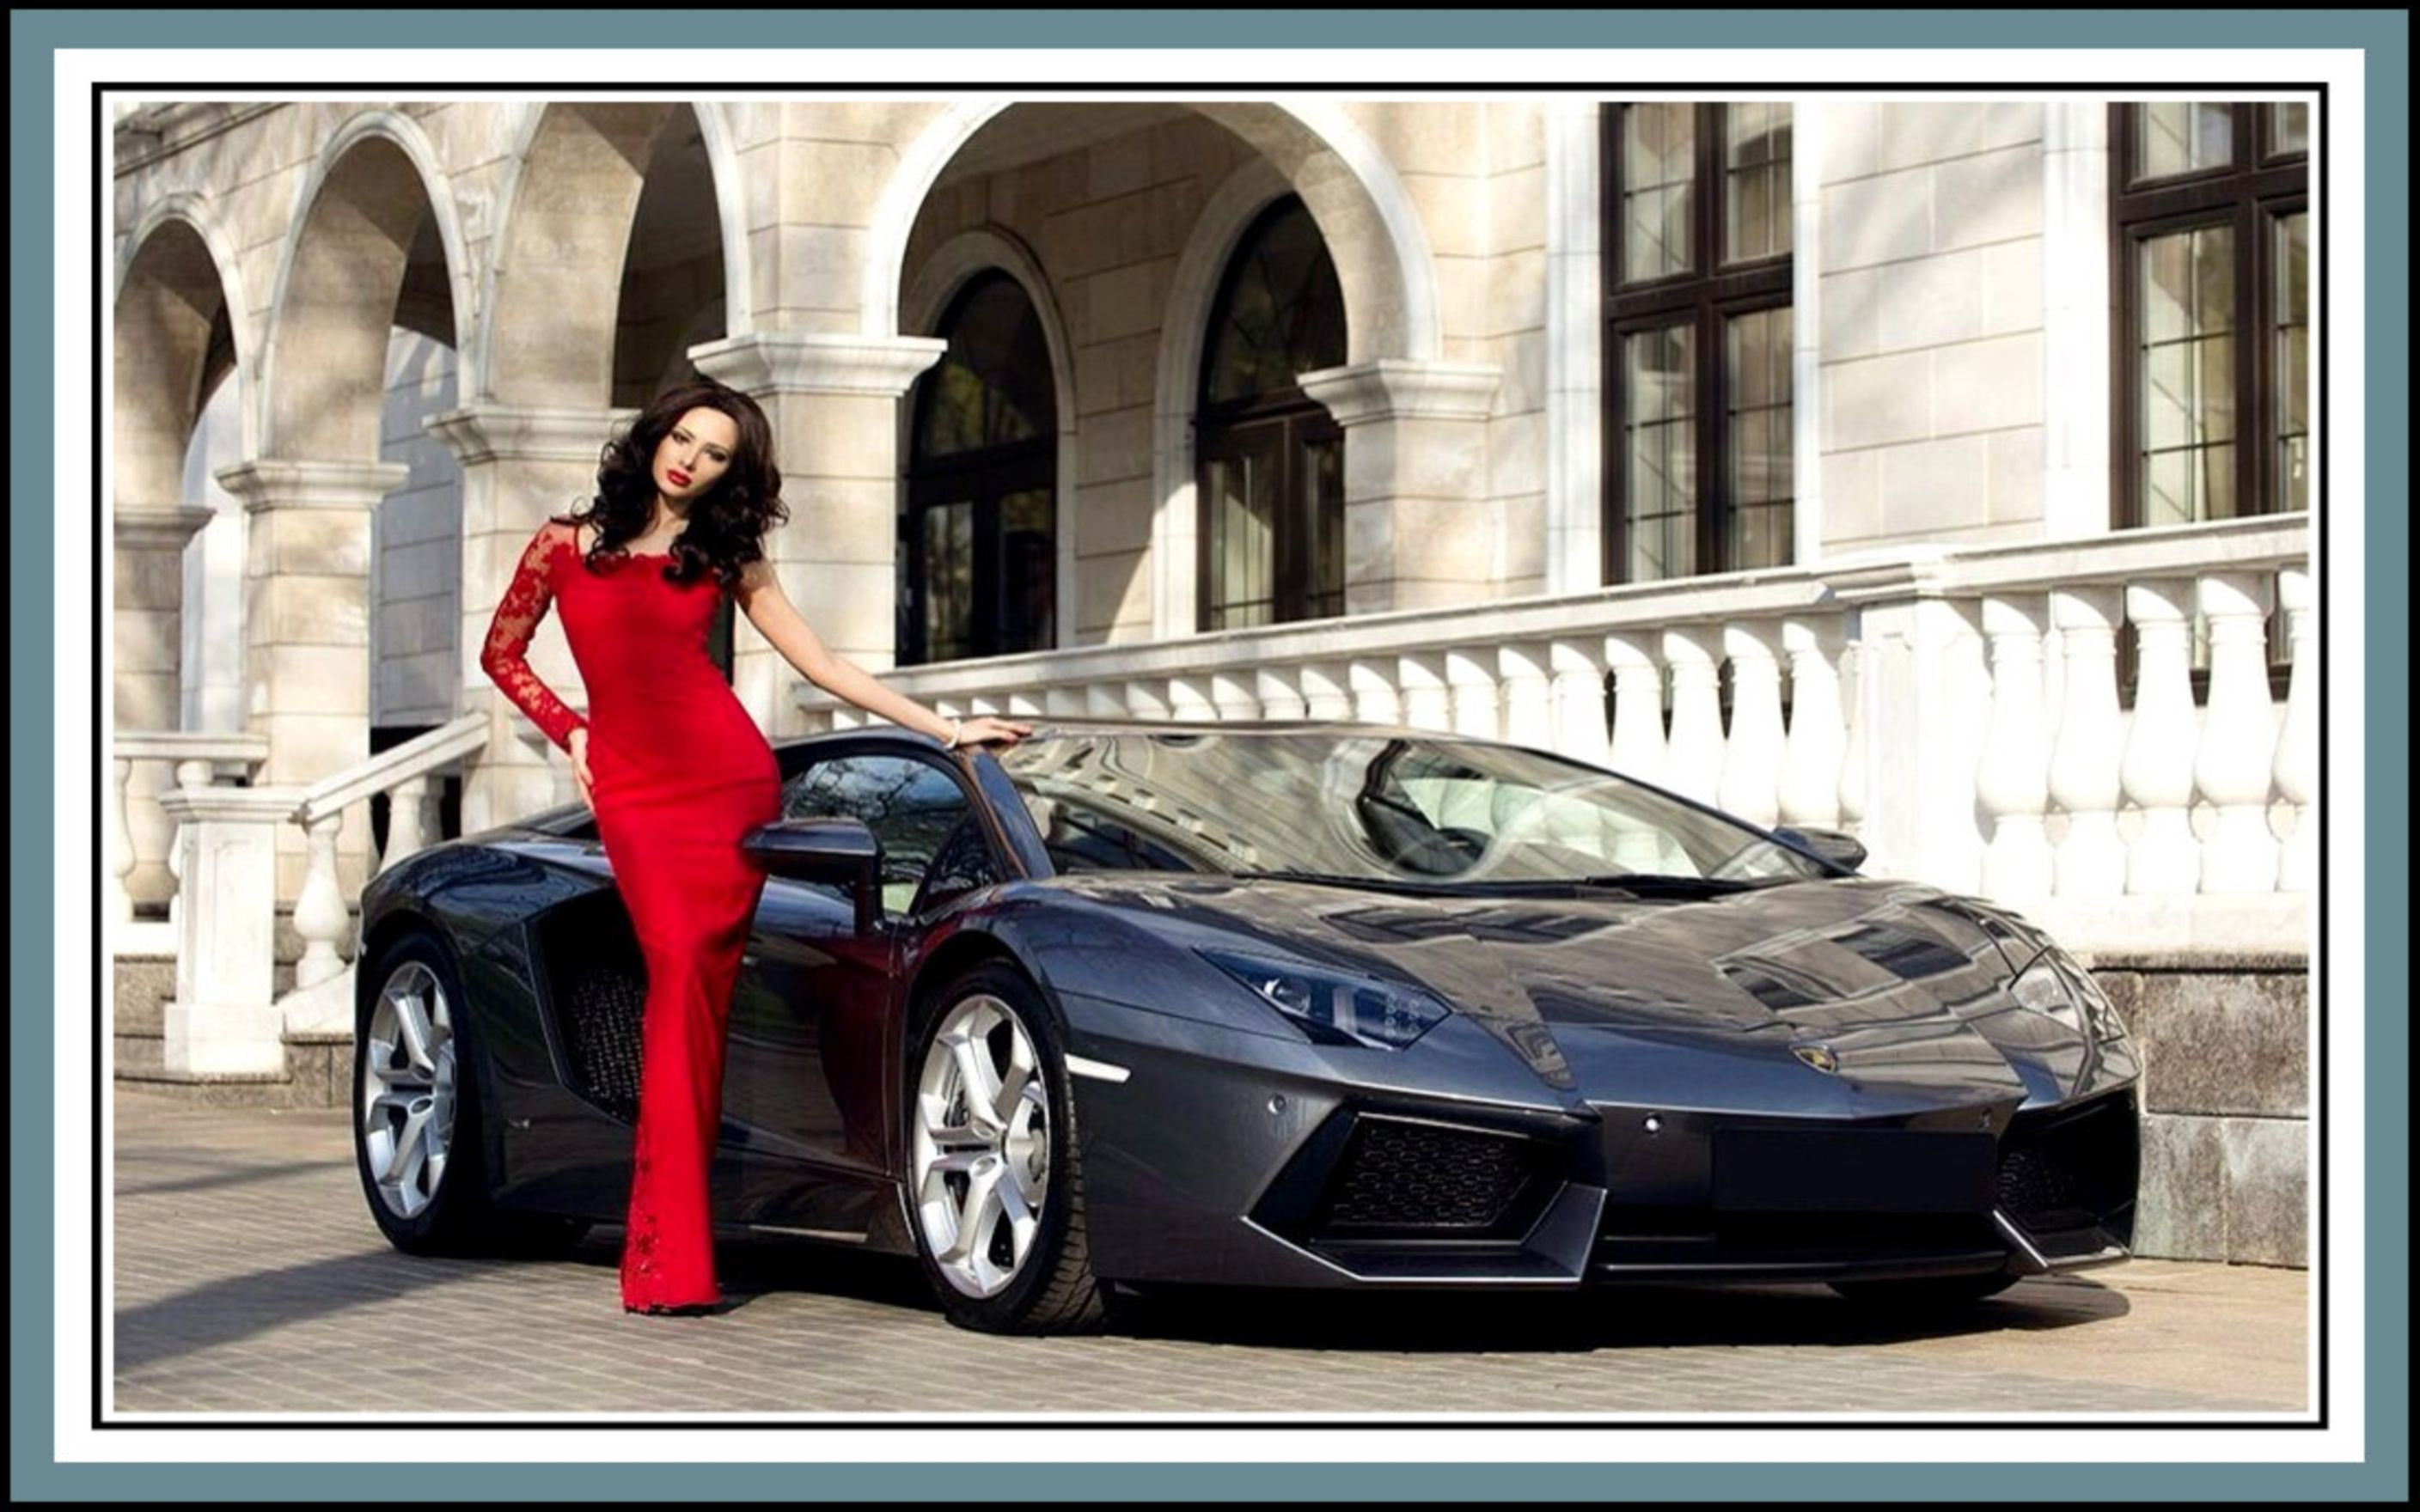 Download free HD Julia Adasheva And Lamborghini Wallpaper, image